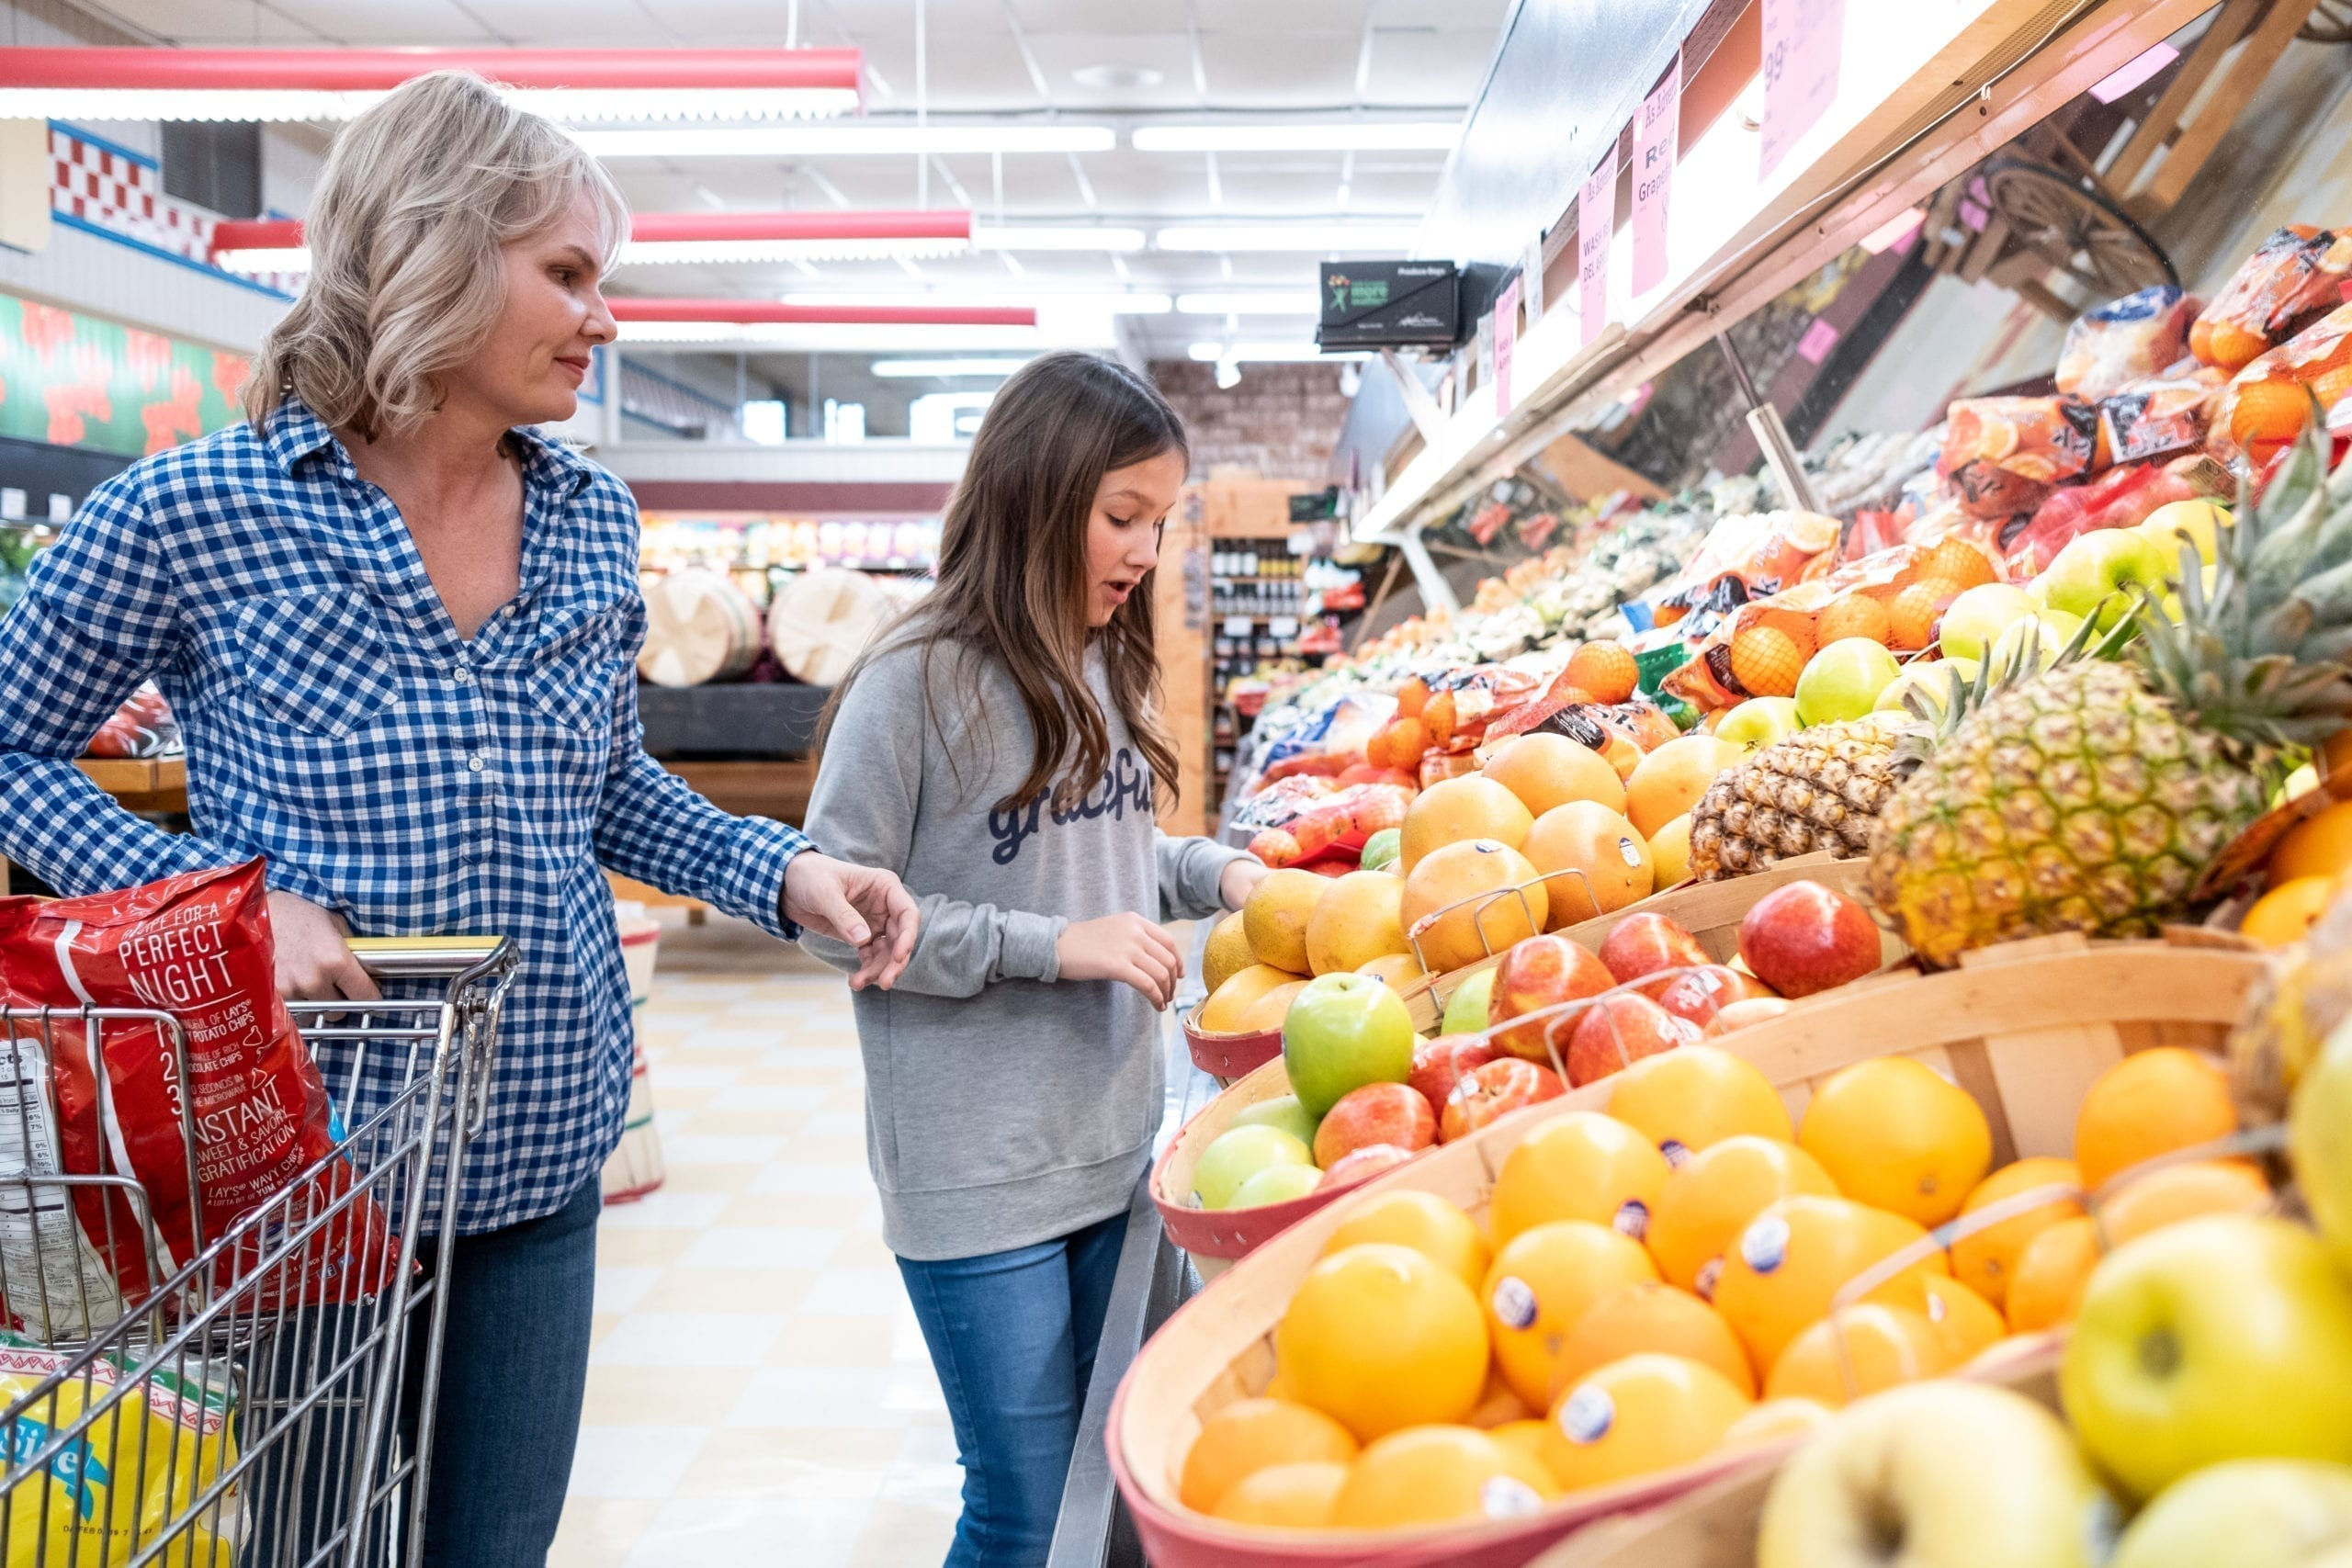 young girl at grocery store with mom looking at produce